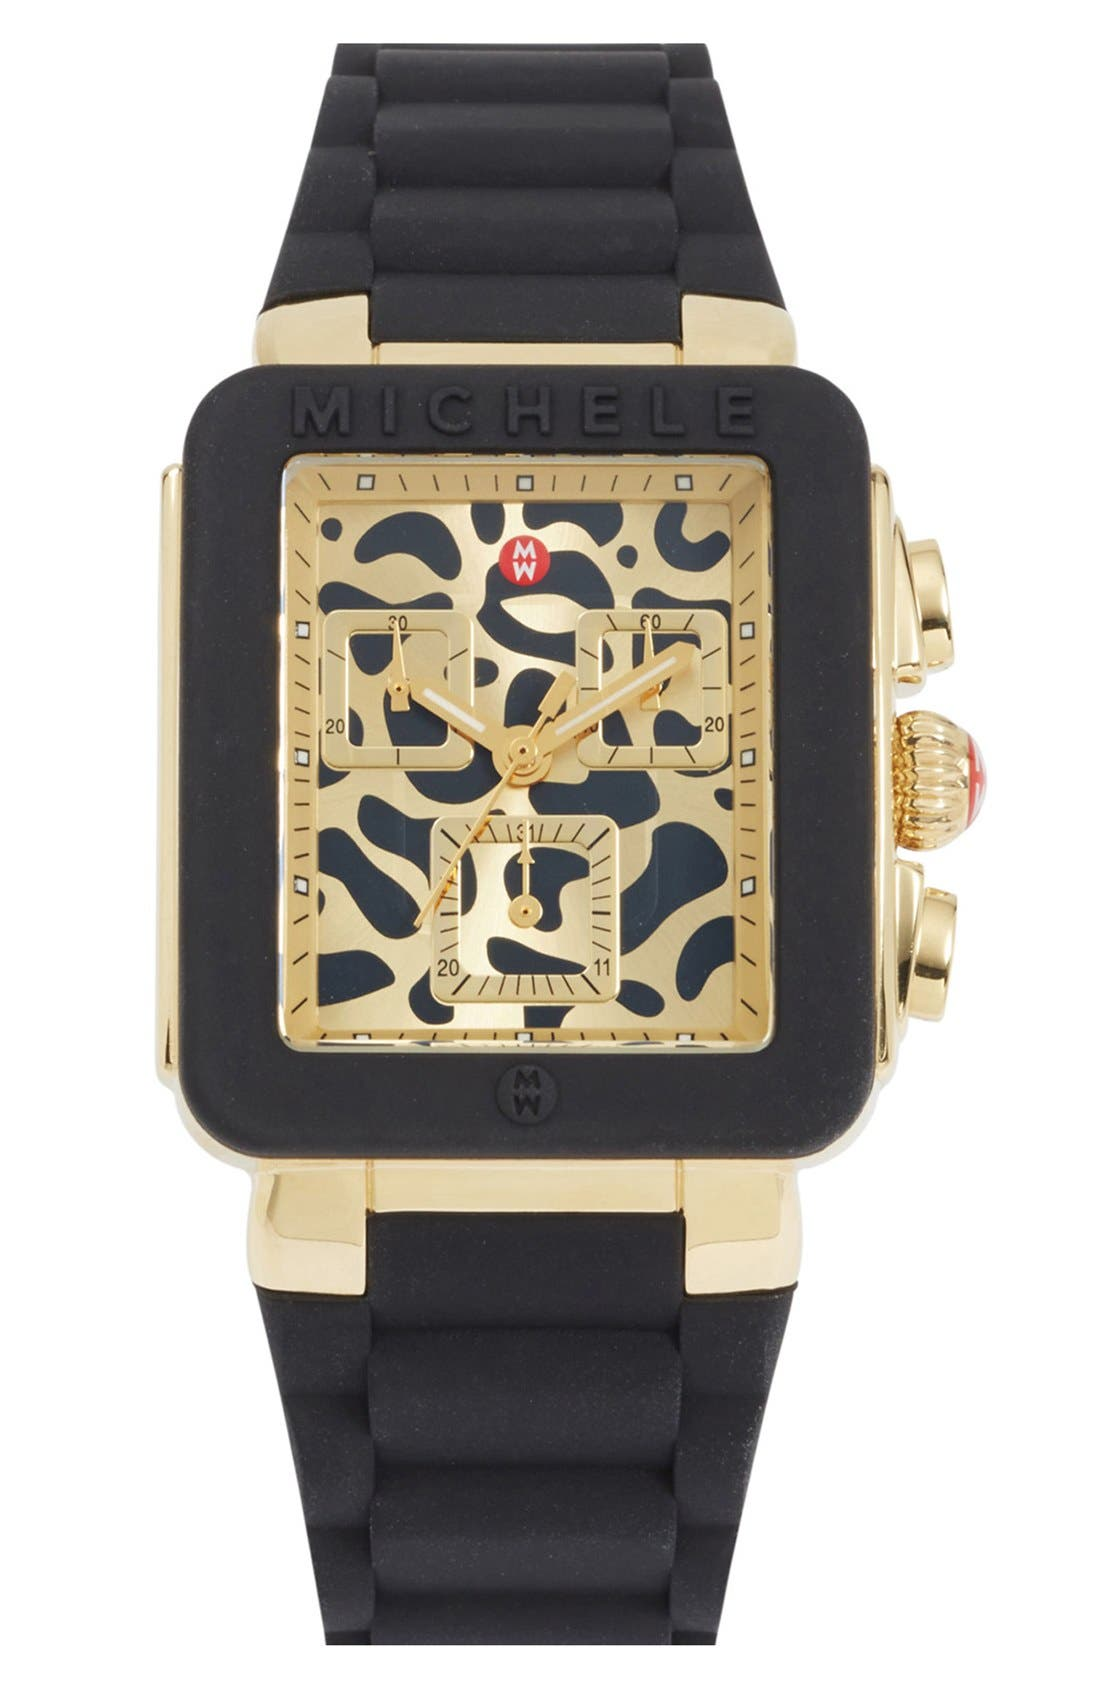 Alternate Image 1 Selected - MICHELE 'Park Jelly Bean' Tiger Dial Watch, 33mm x 36mm